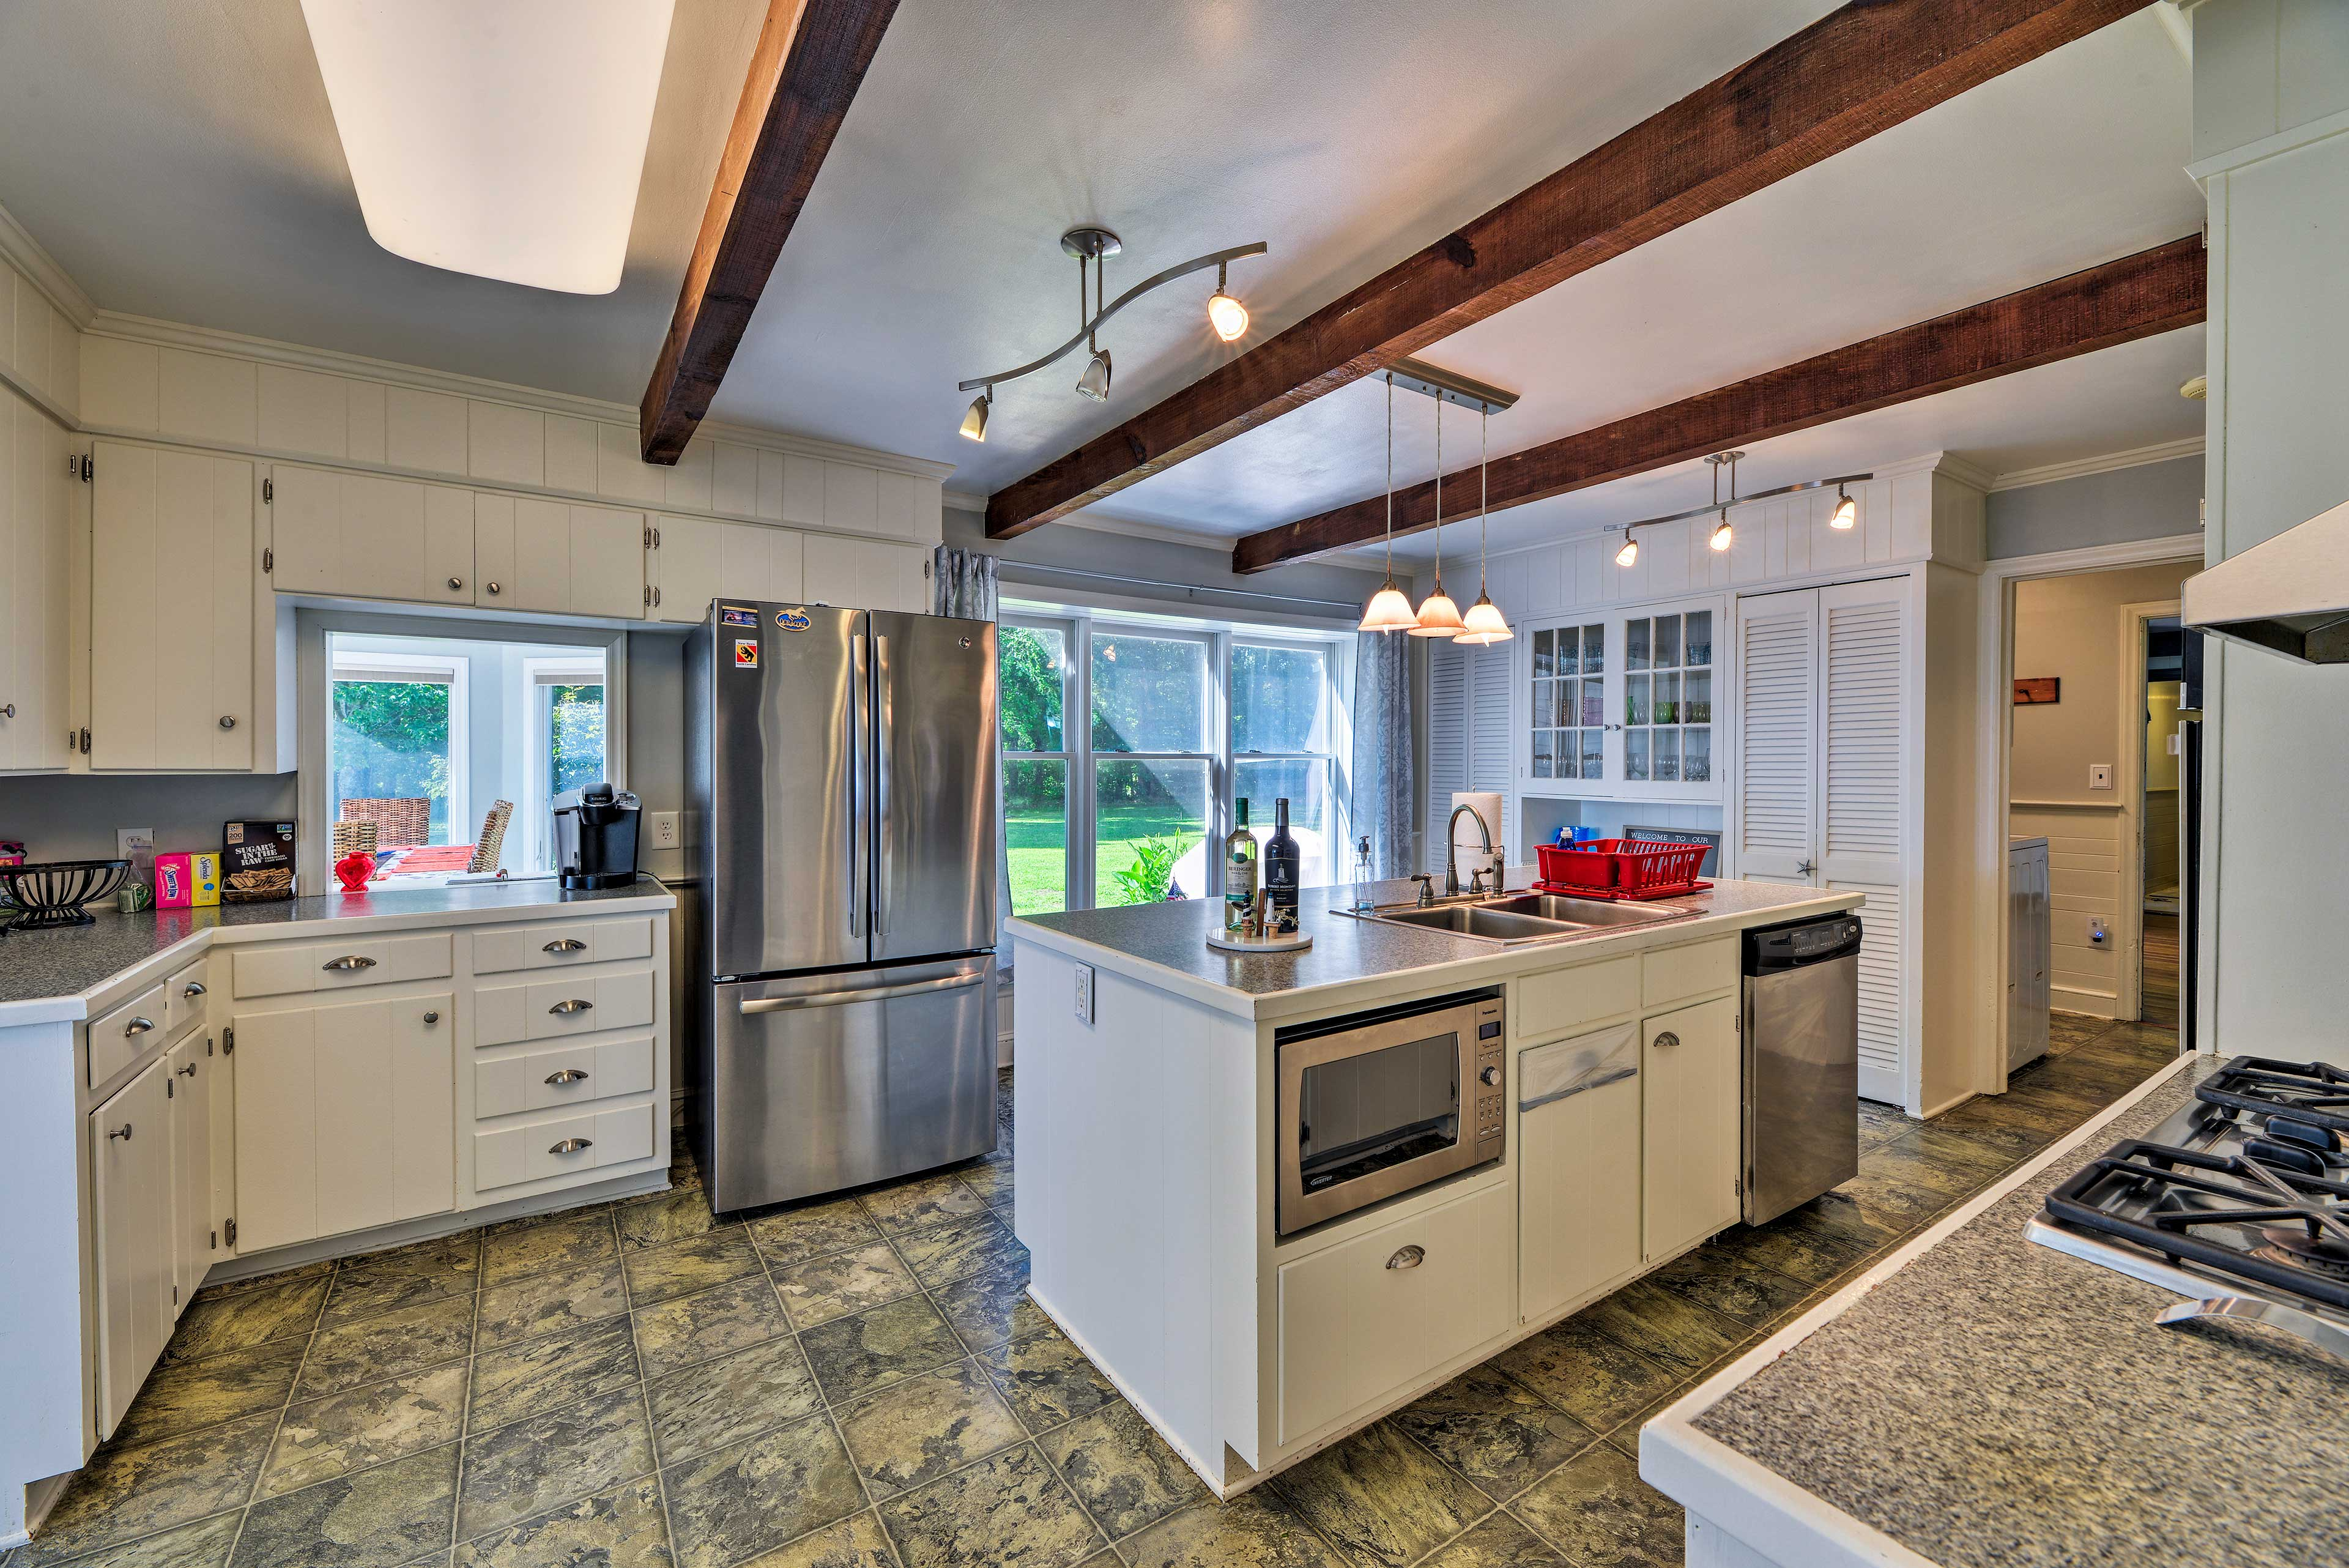 Step into the fully equipped kitchen to prepare a feast.